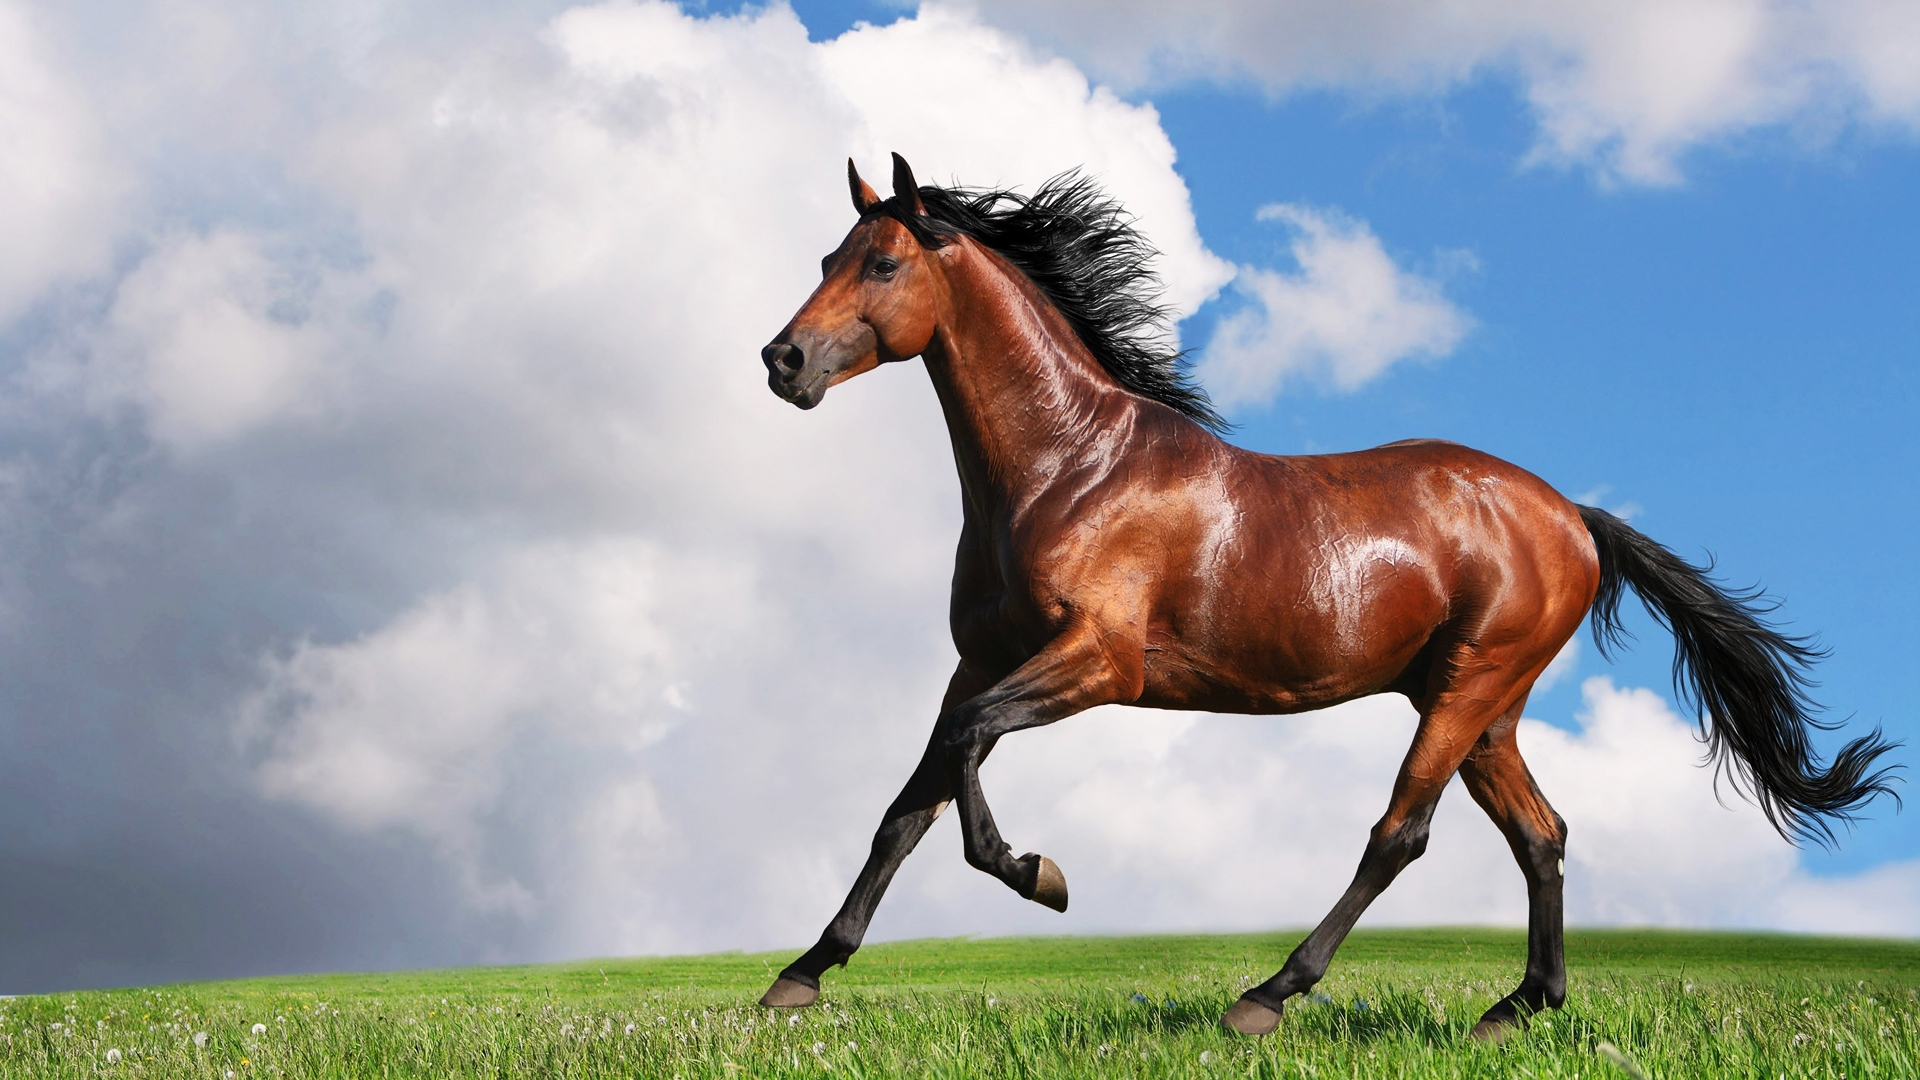 Arabian horse wallpapers pictures images - Arabian horse pictures ...